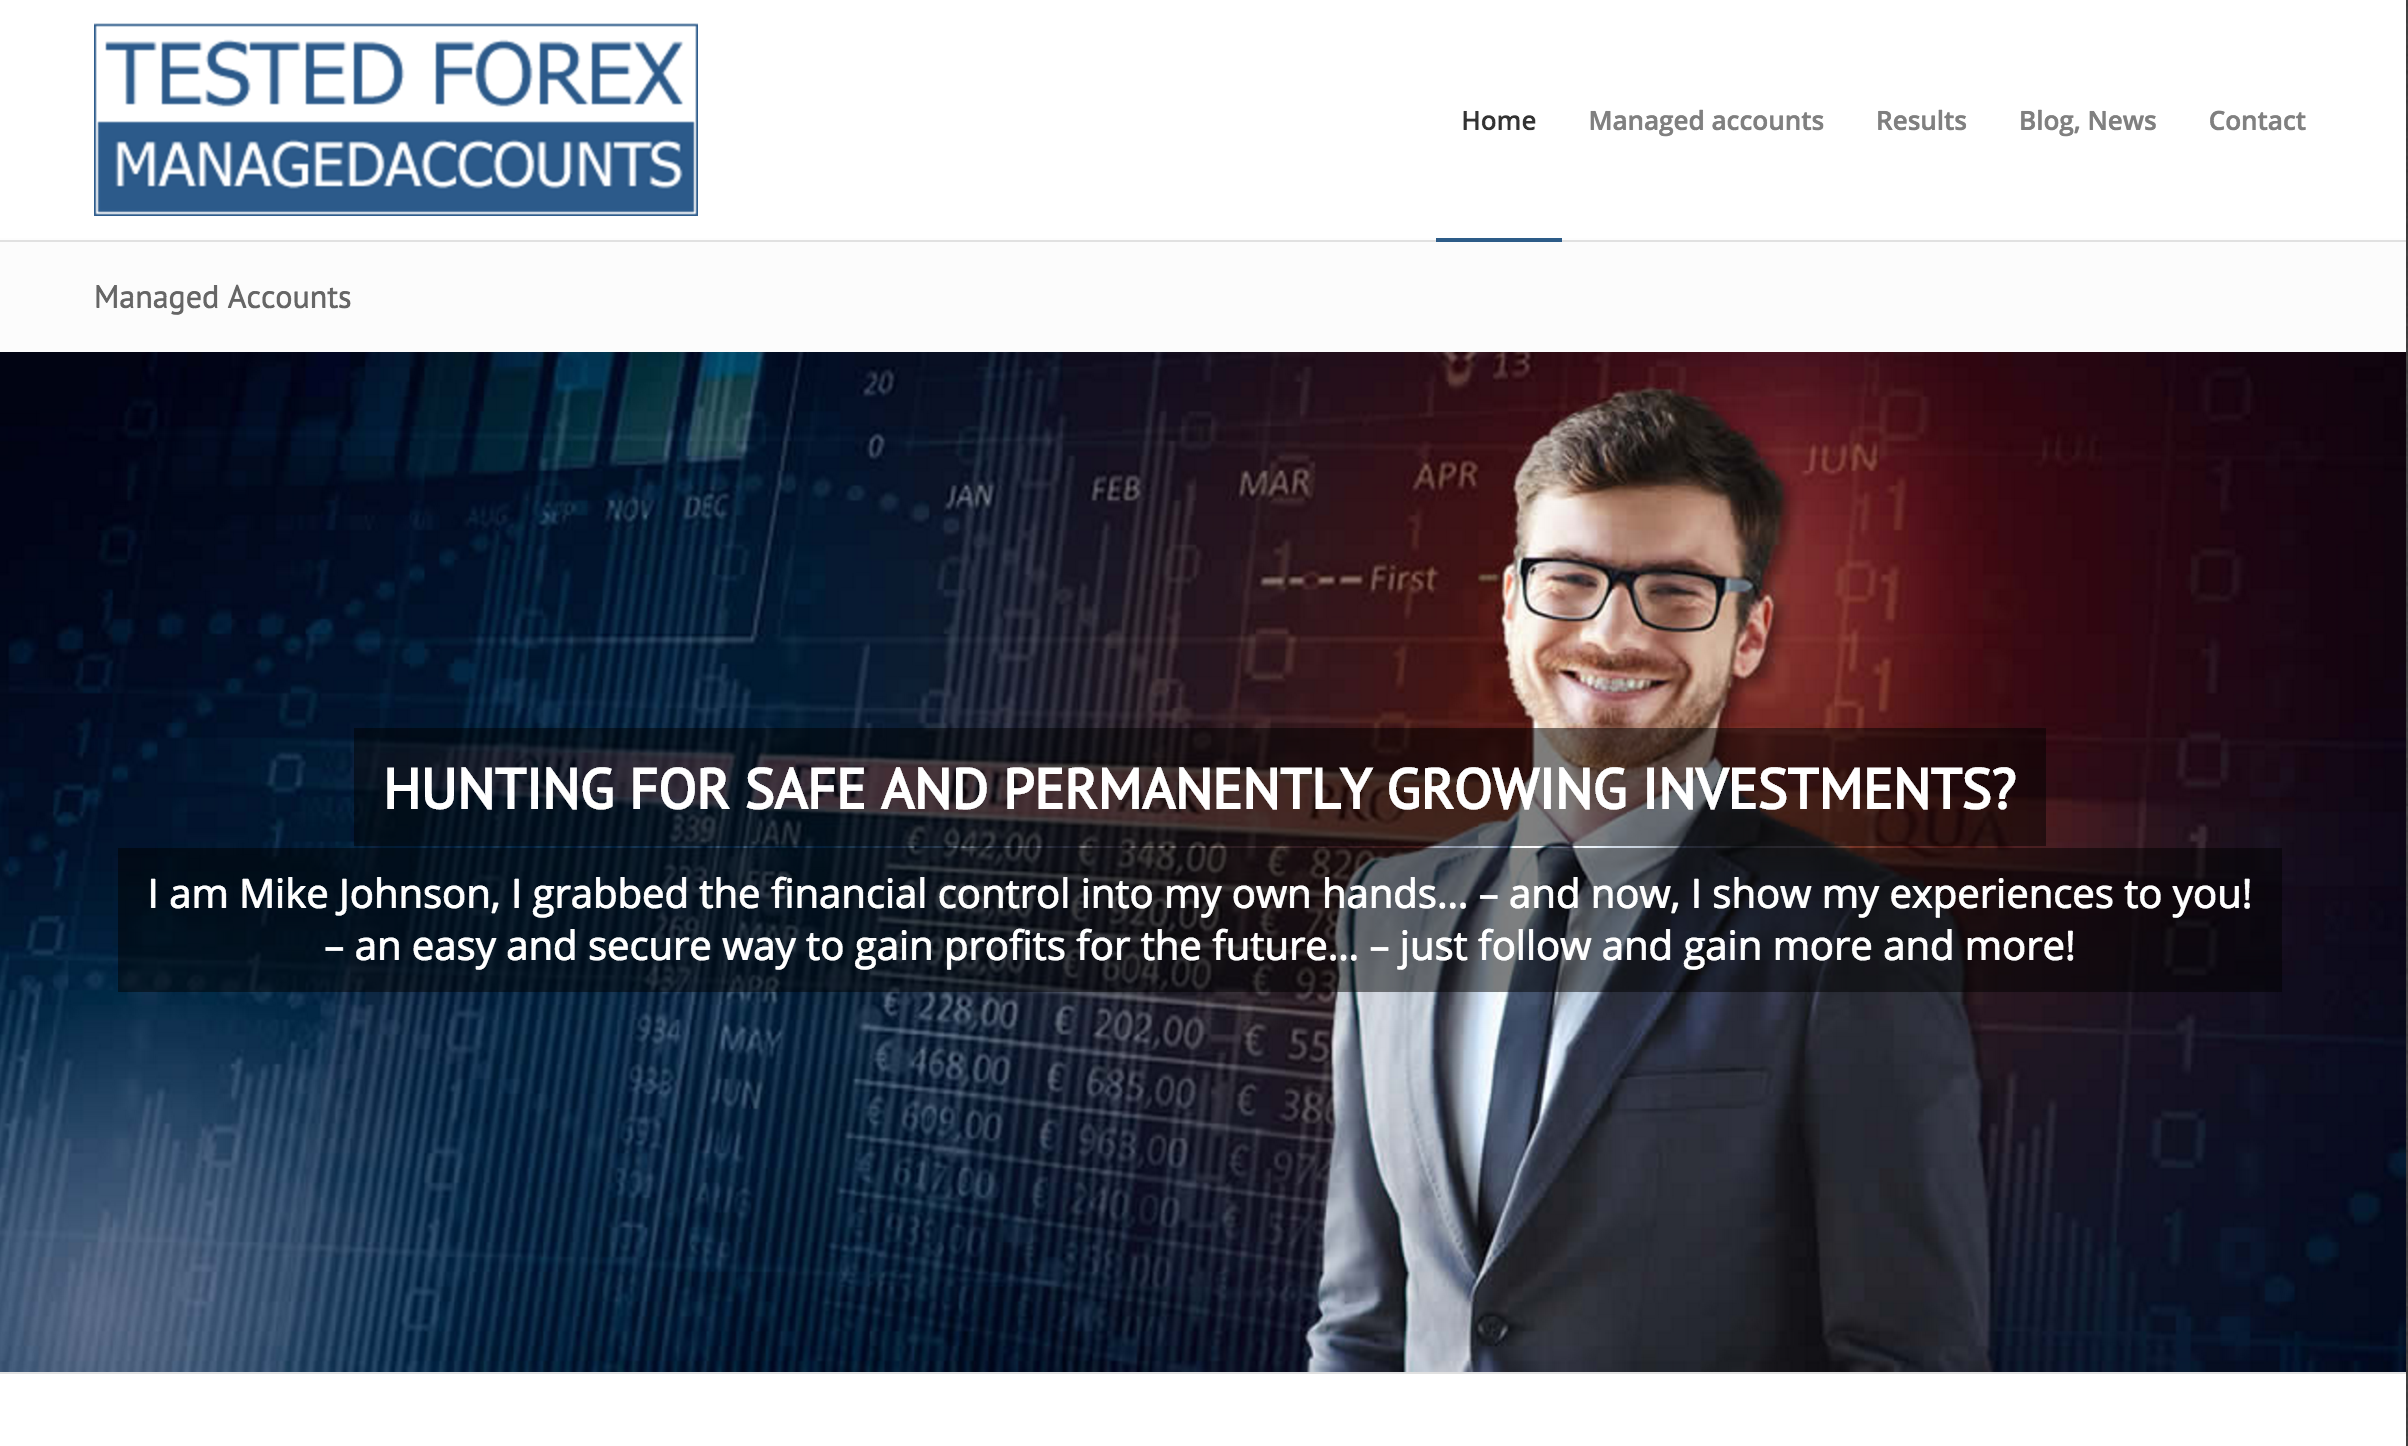 Forex Managed Accounts by Forex92 - 25% to 35% ROI Every Month